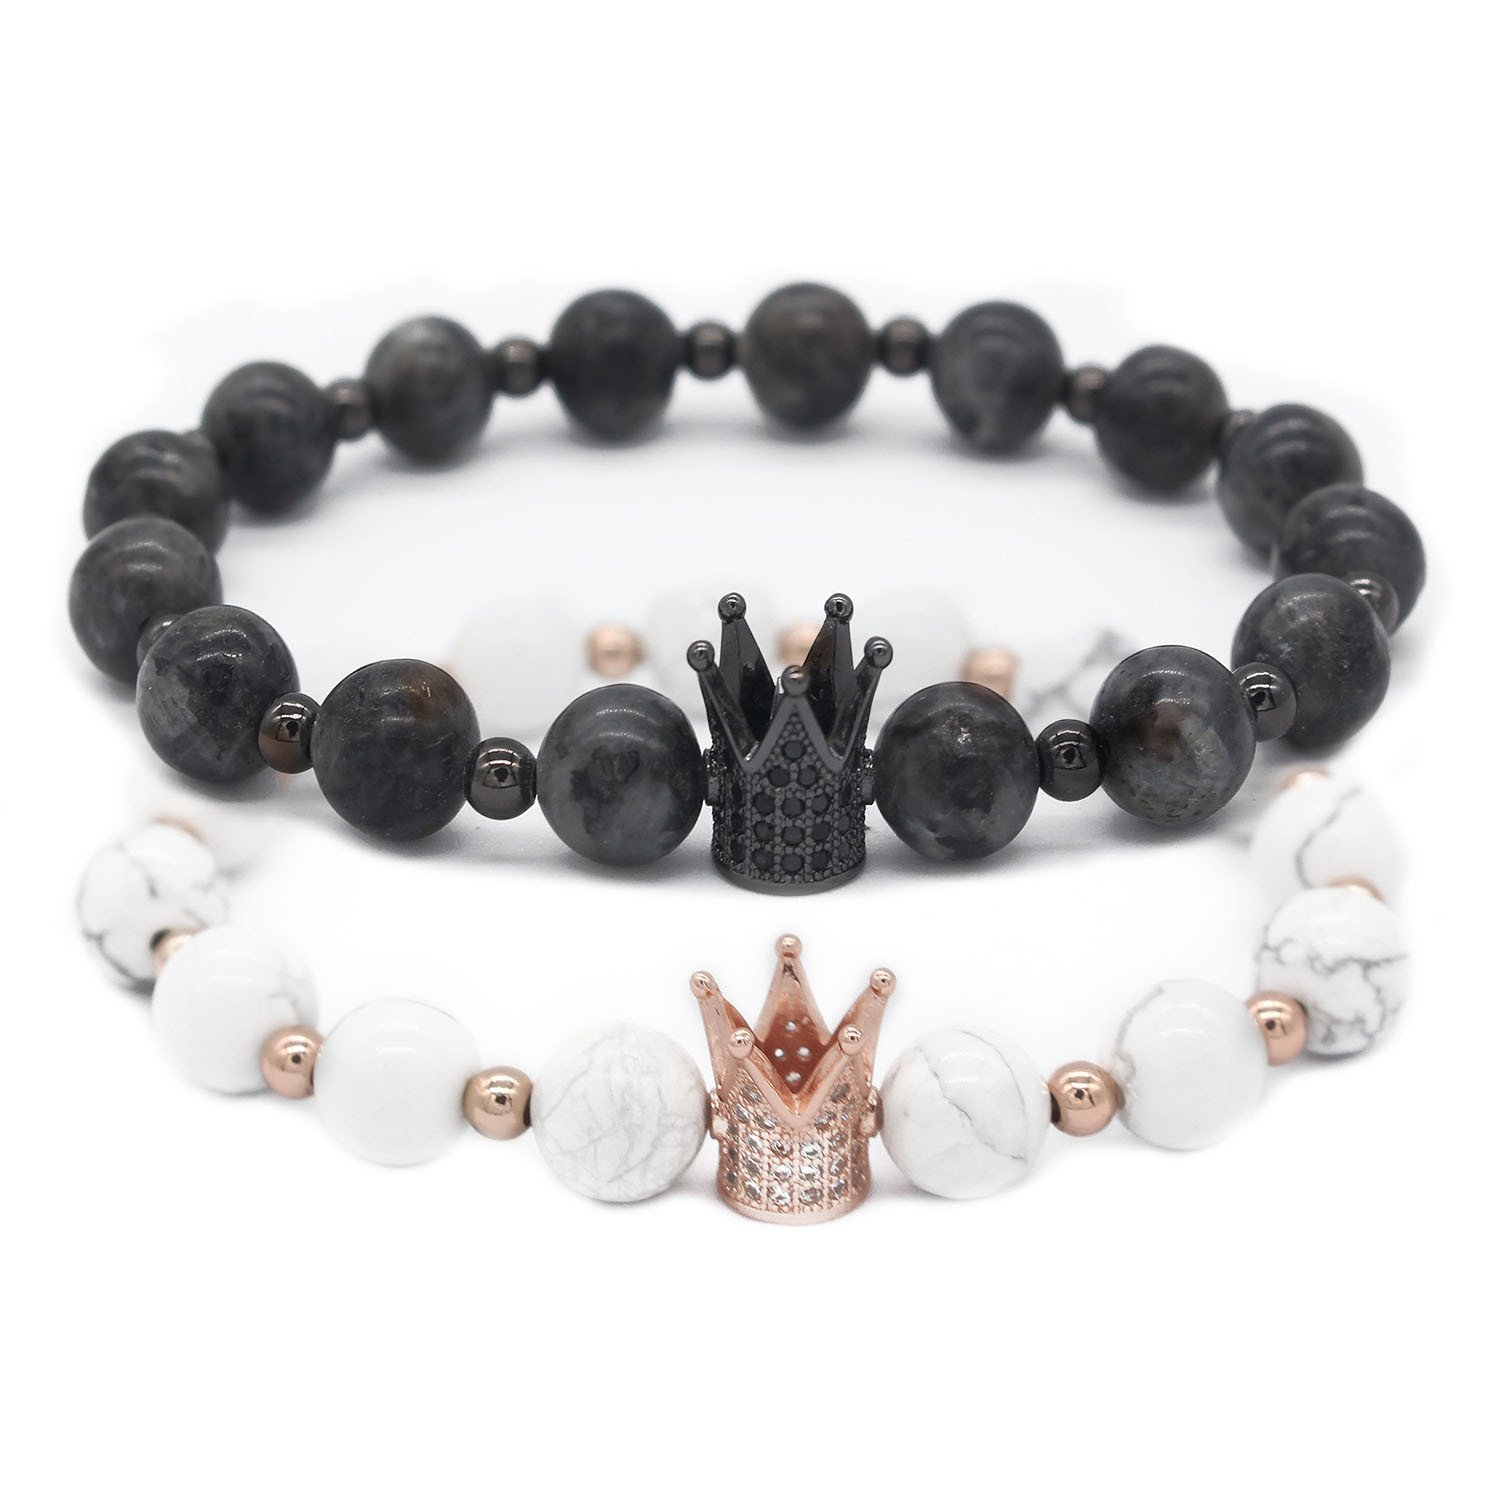 Gemfeel 8mm Black Labradorite & White Howlite CZ Her King/His Queen 8mm Beads Couple Bracelet, 7.6''+7.2''